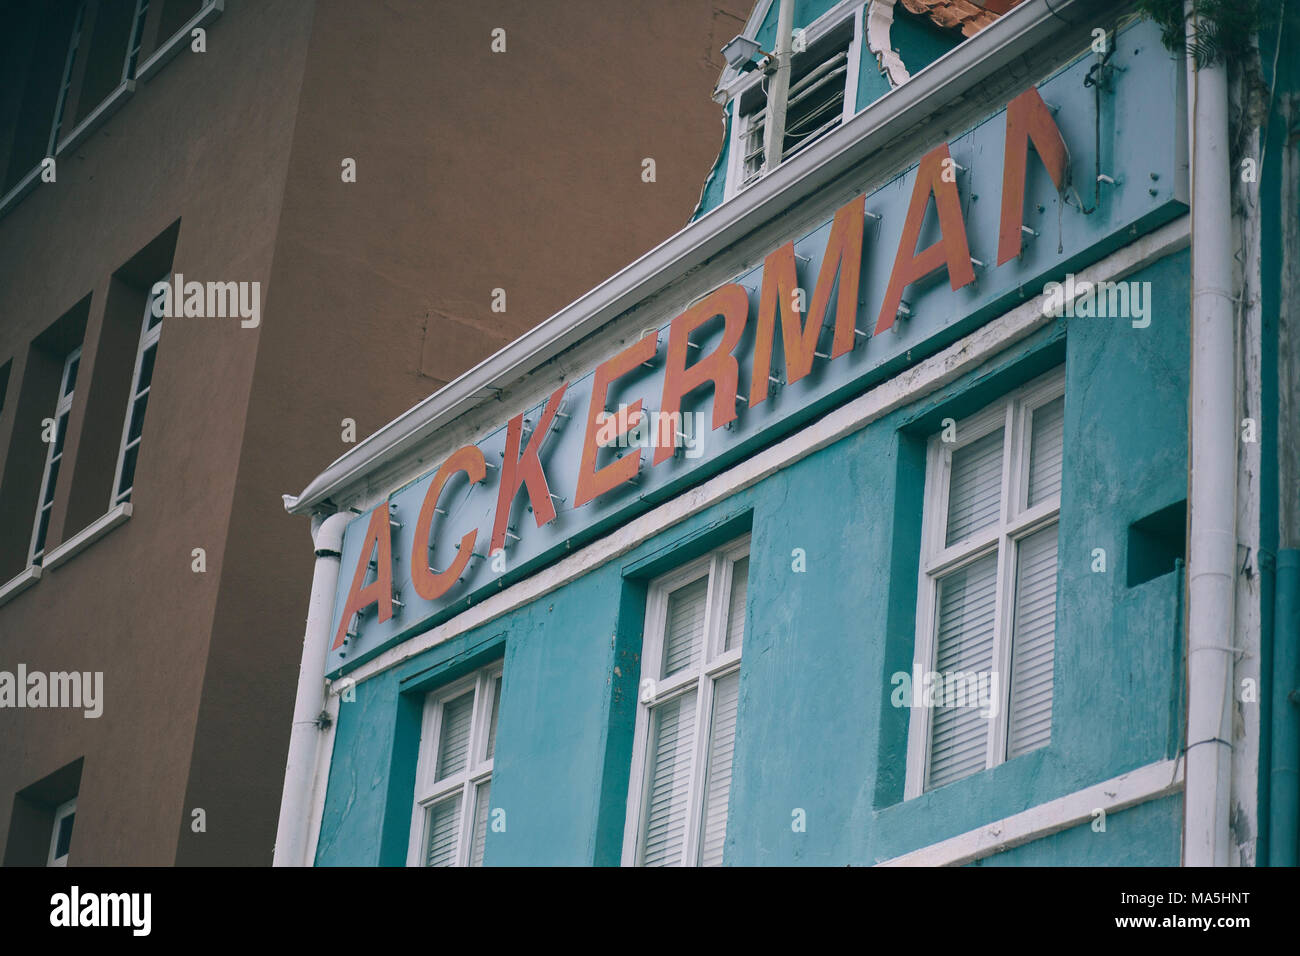 ackerman sign in metal typography in orange color on willemstad, curazao island - Stock Image